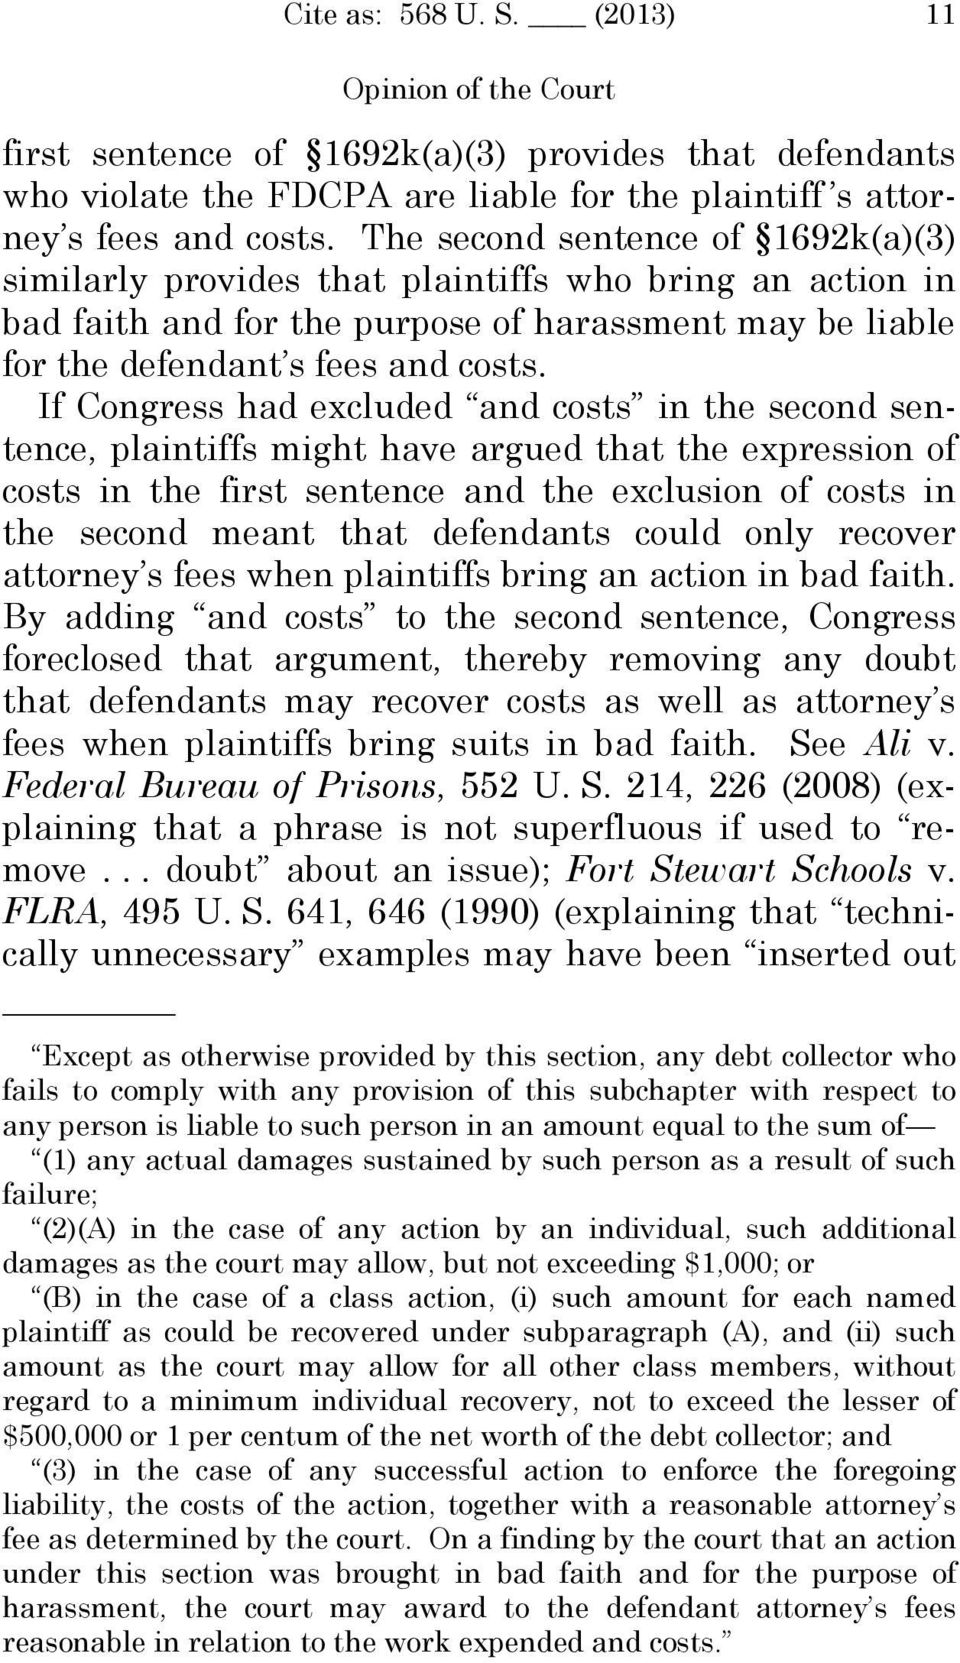 If Congress had excluded and costs in the second sentence, plaintiffs might have argued that the expression of costs in the first sentence and the exclusion of costs in the second meant that